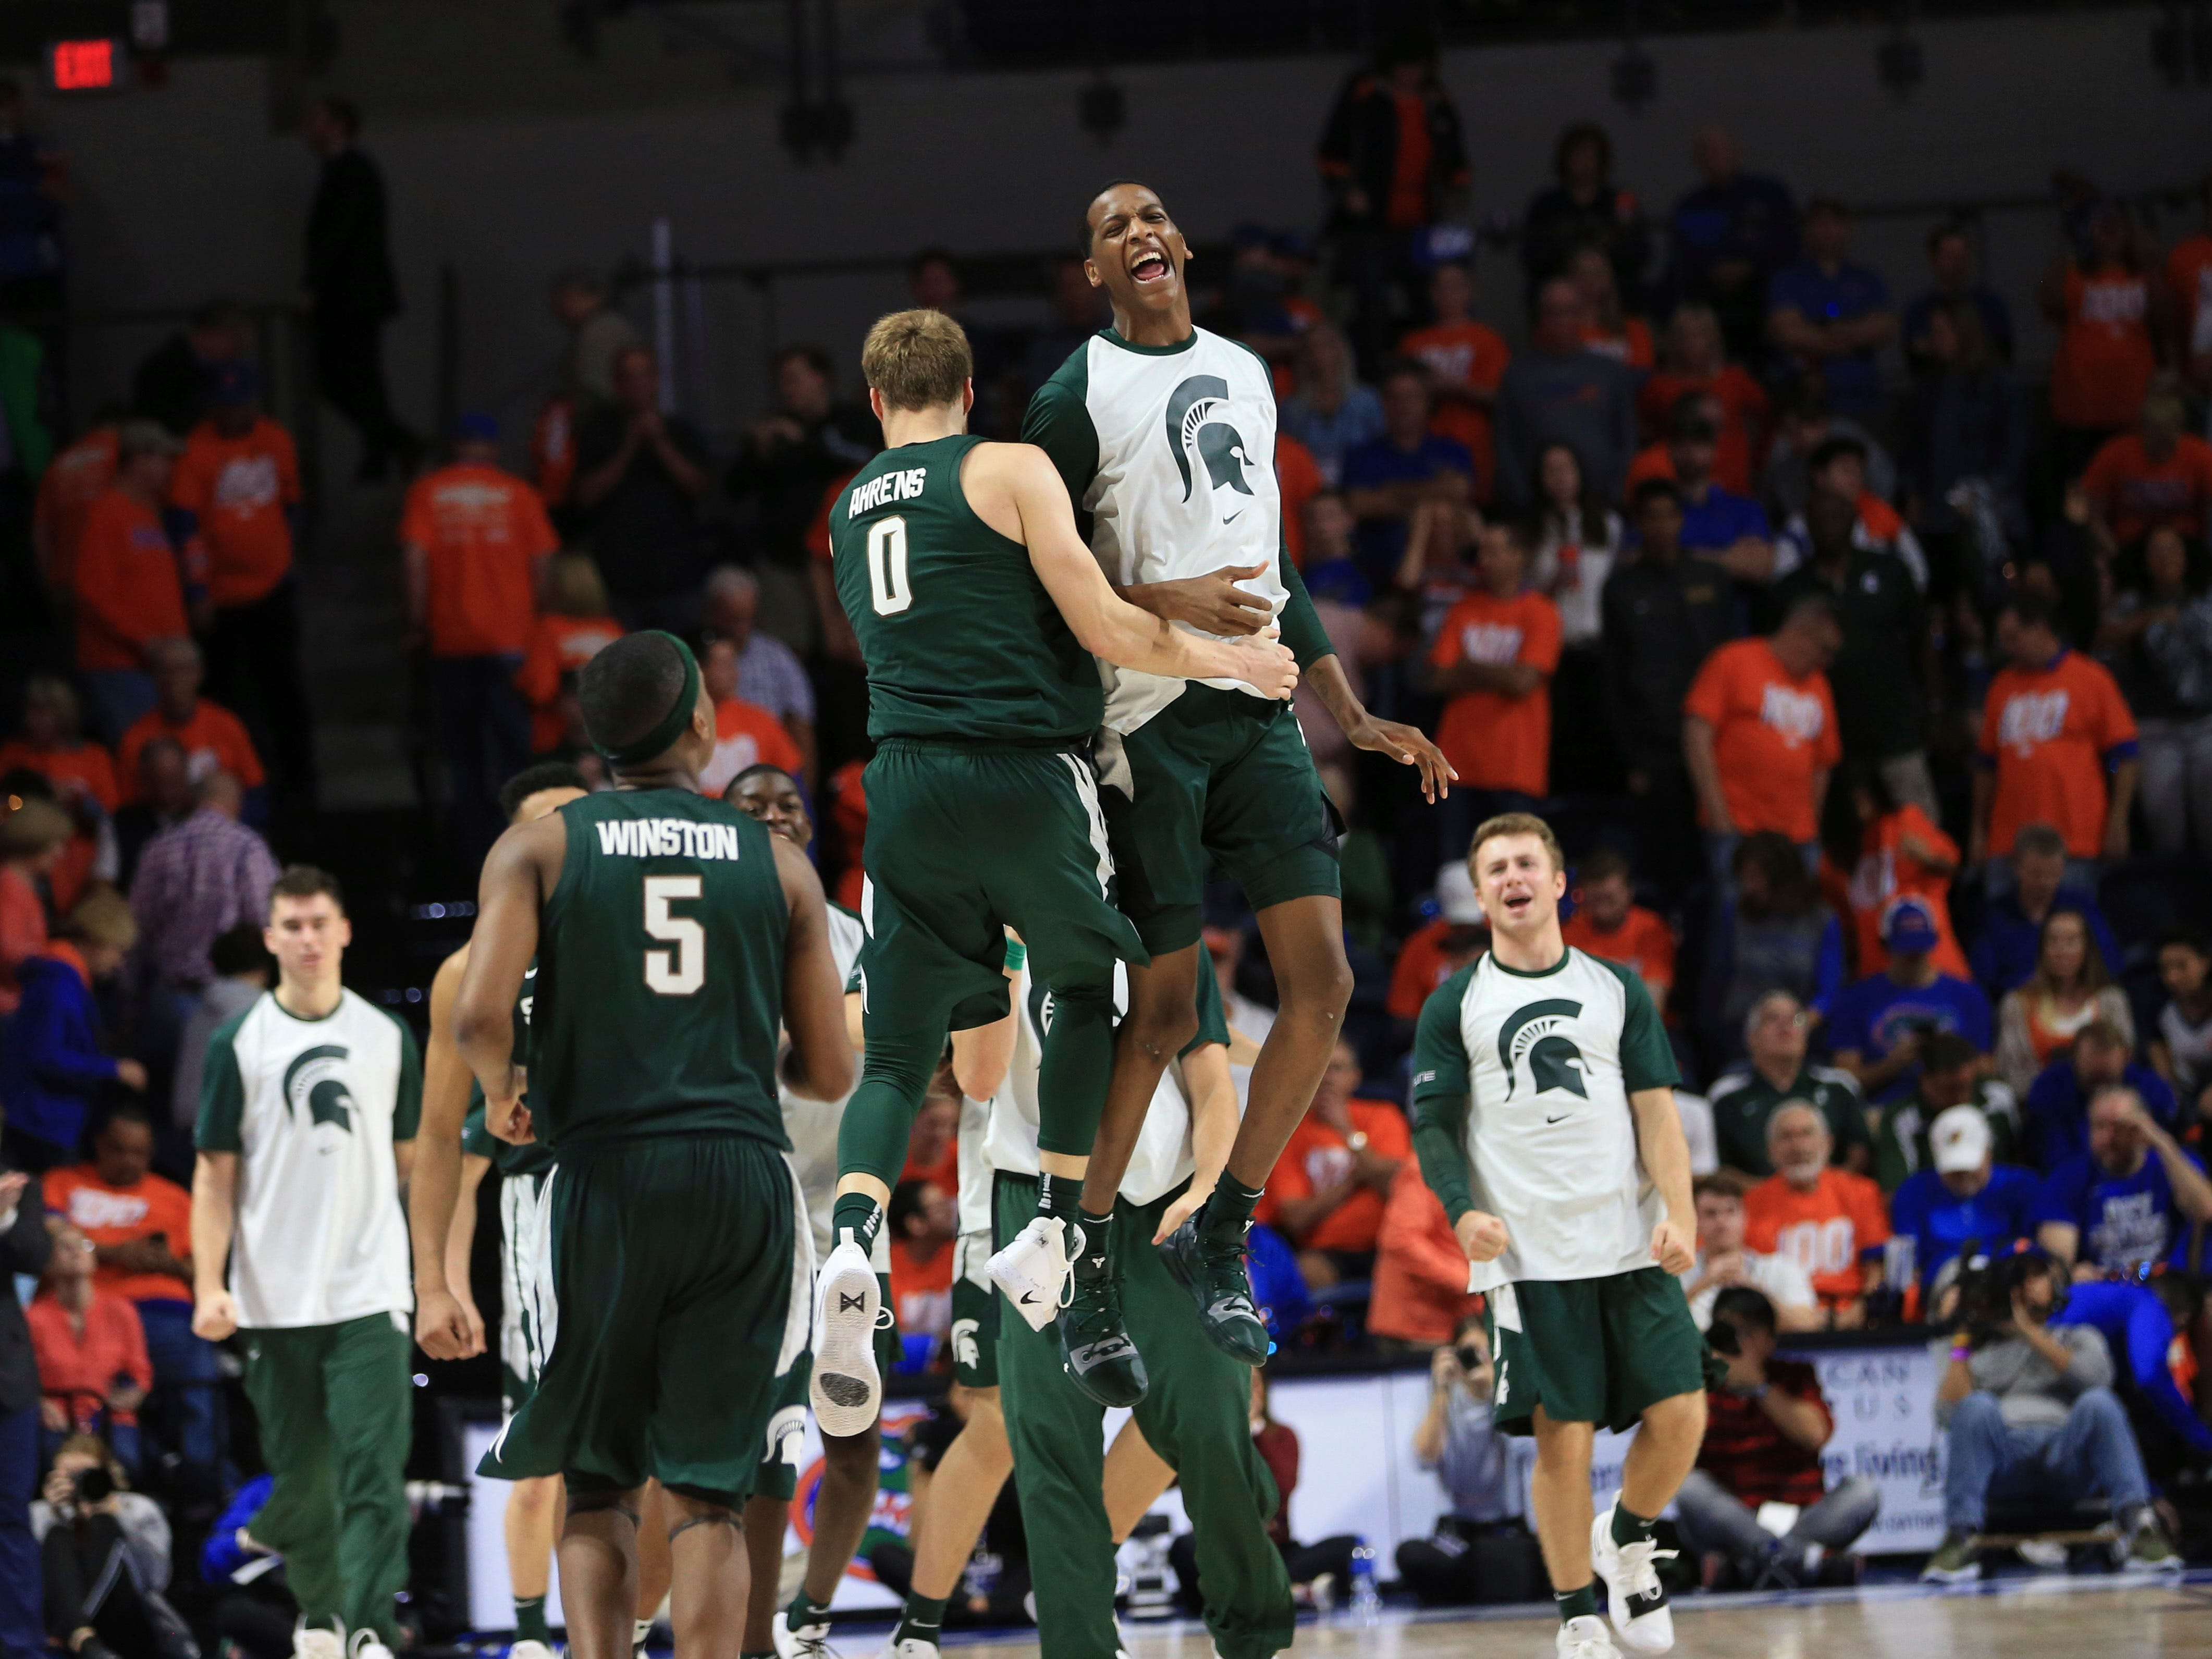 Michigan State forwards Kyle Ahrens (0) and Marcus Bingham Jr. (30) celebrate after an NCAA college basketball game against Florida, Saturday, Dec. 8, 2018, in Gainesville, Fla. Michigan State defeated Florida 63-59.